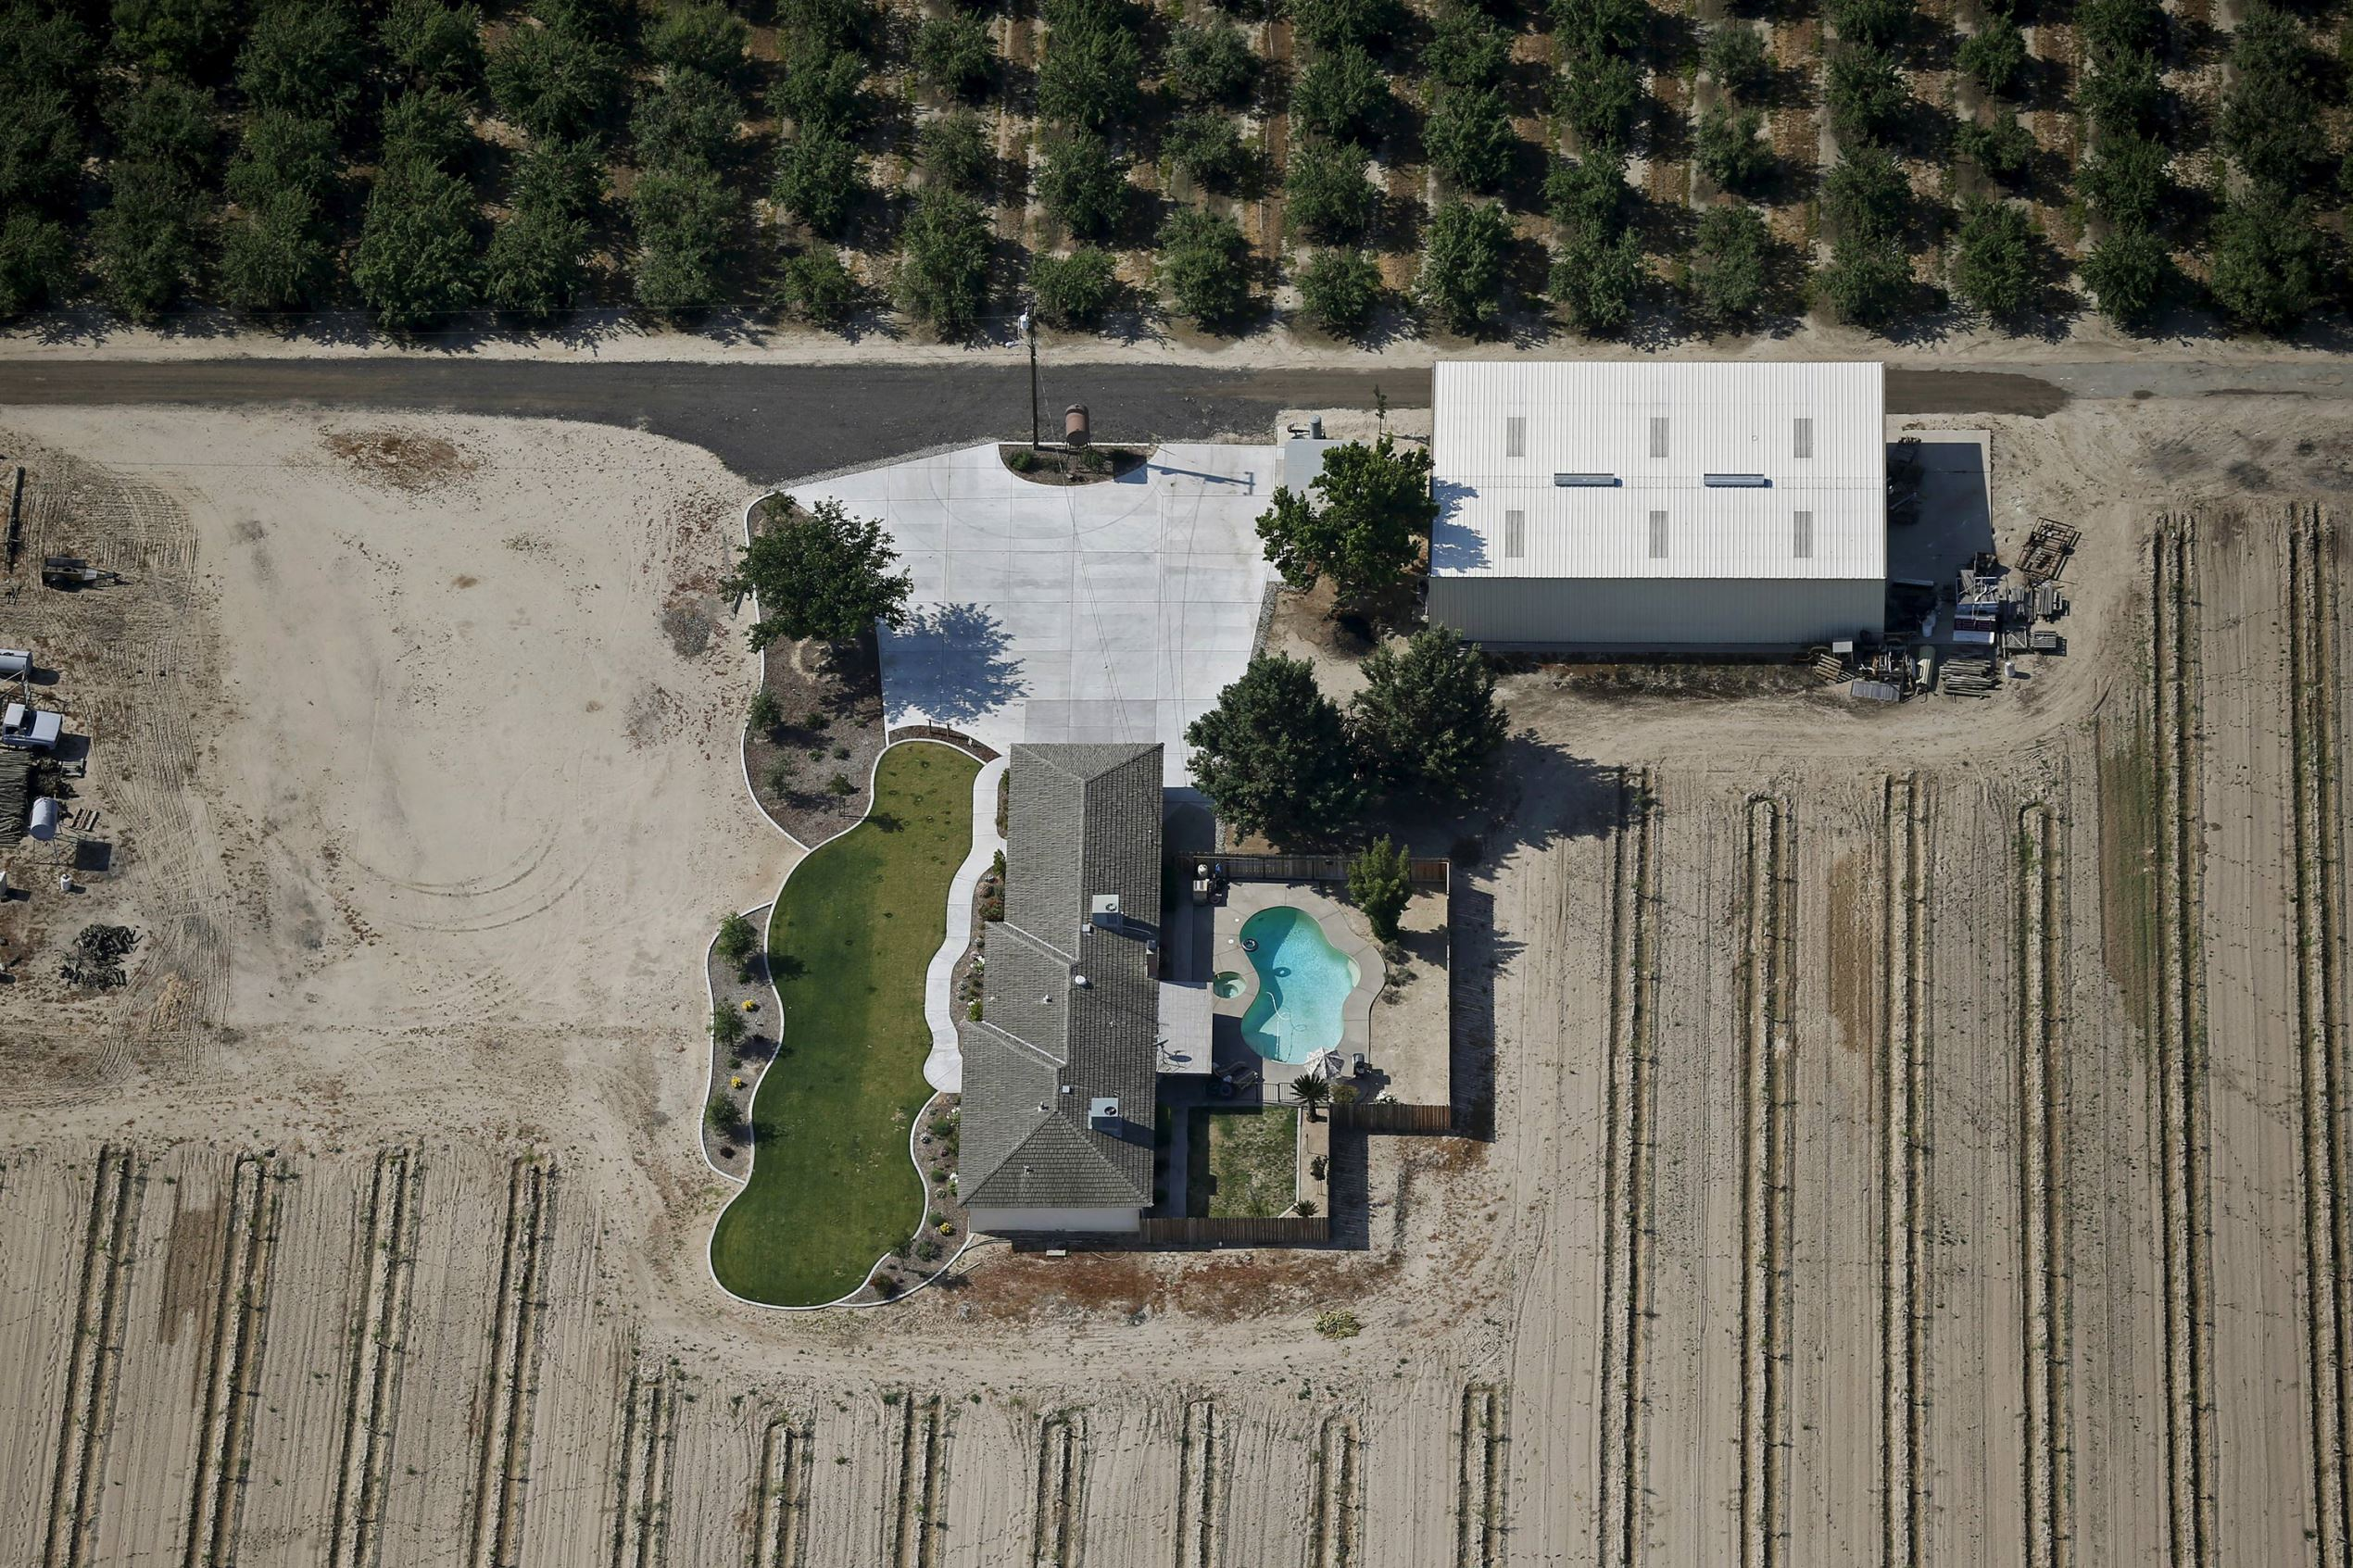 A farm with a lawn and swimming pool near Fresno, California.